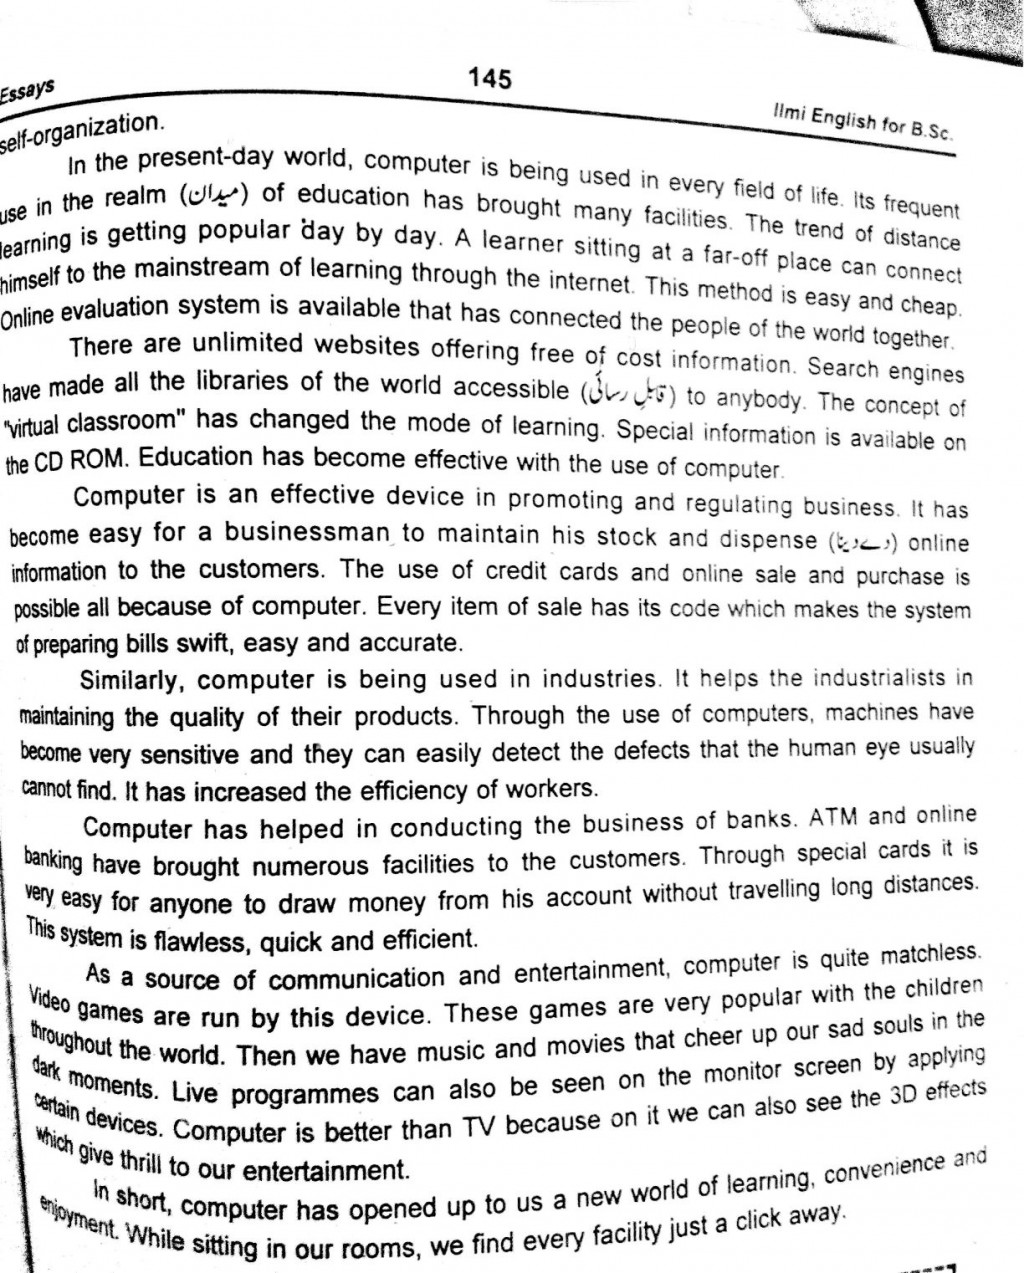 009 Computer2b252822529 Essay Of Advantages And Disadvantages Computer Archaicawful On In Urdu Language Games Large